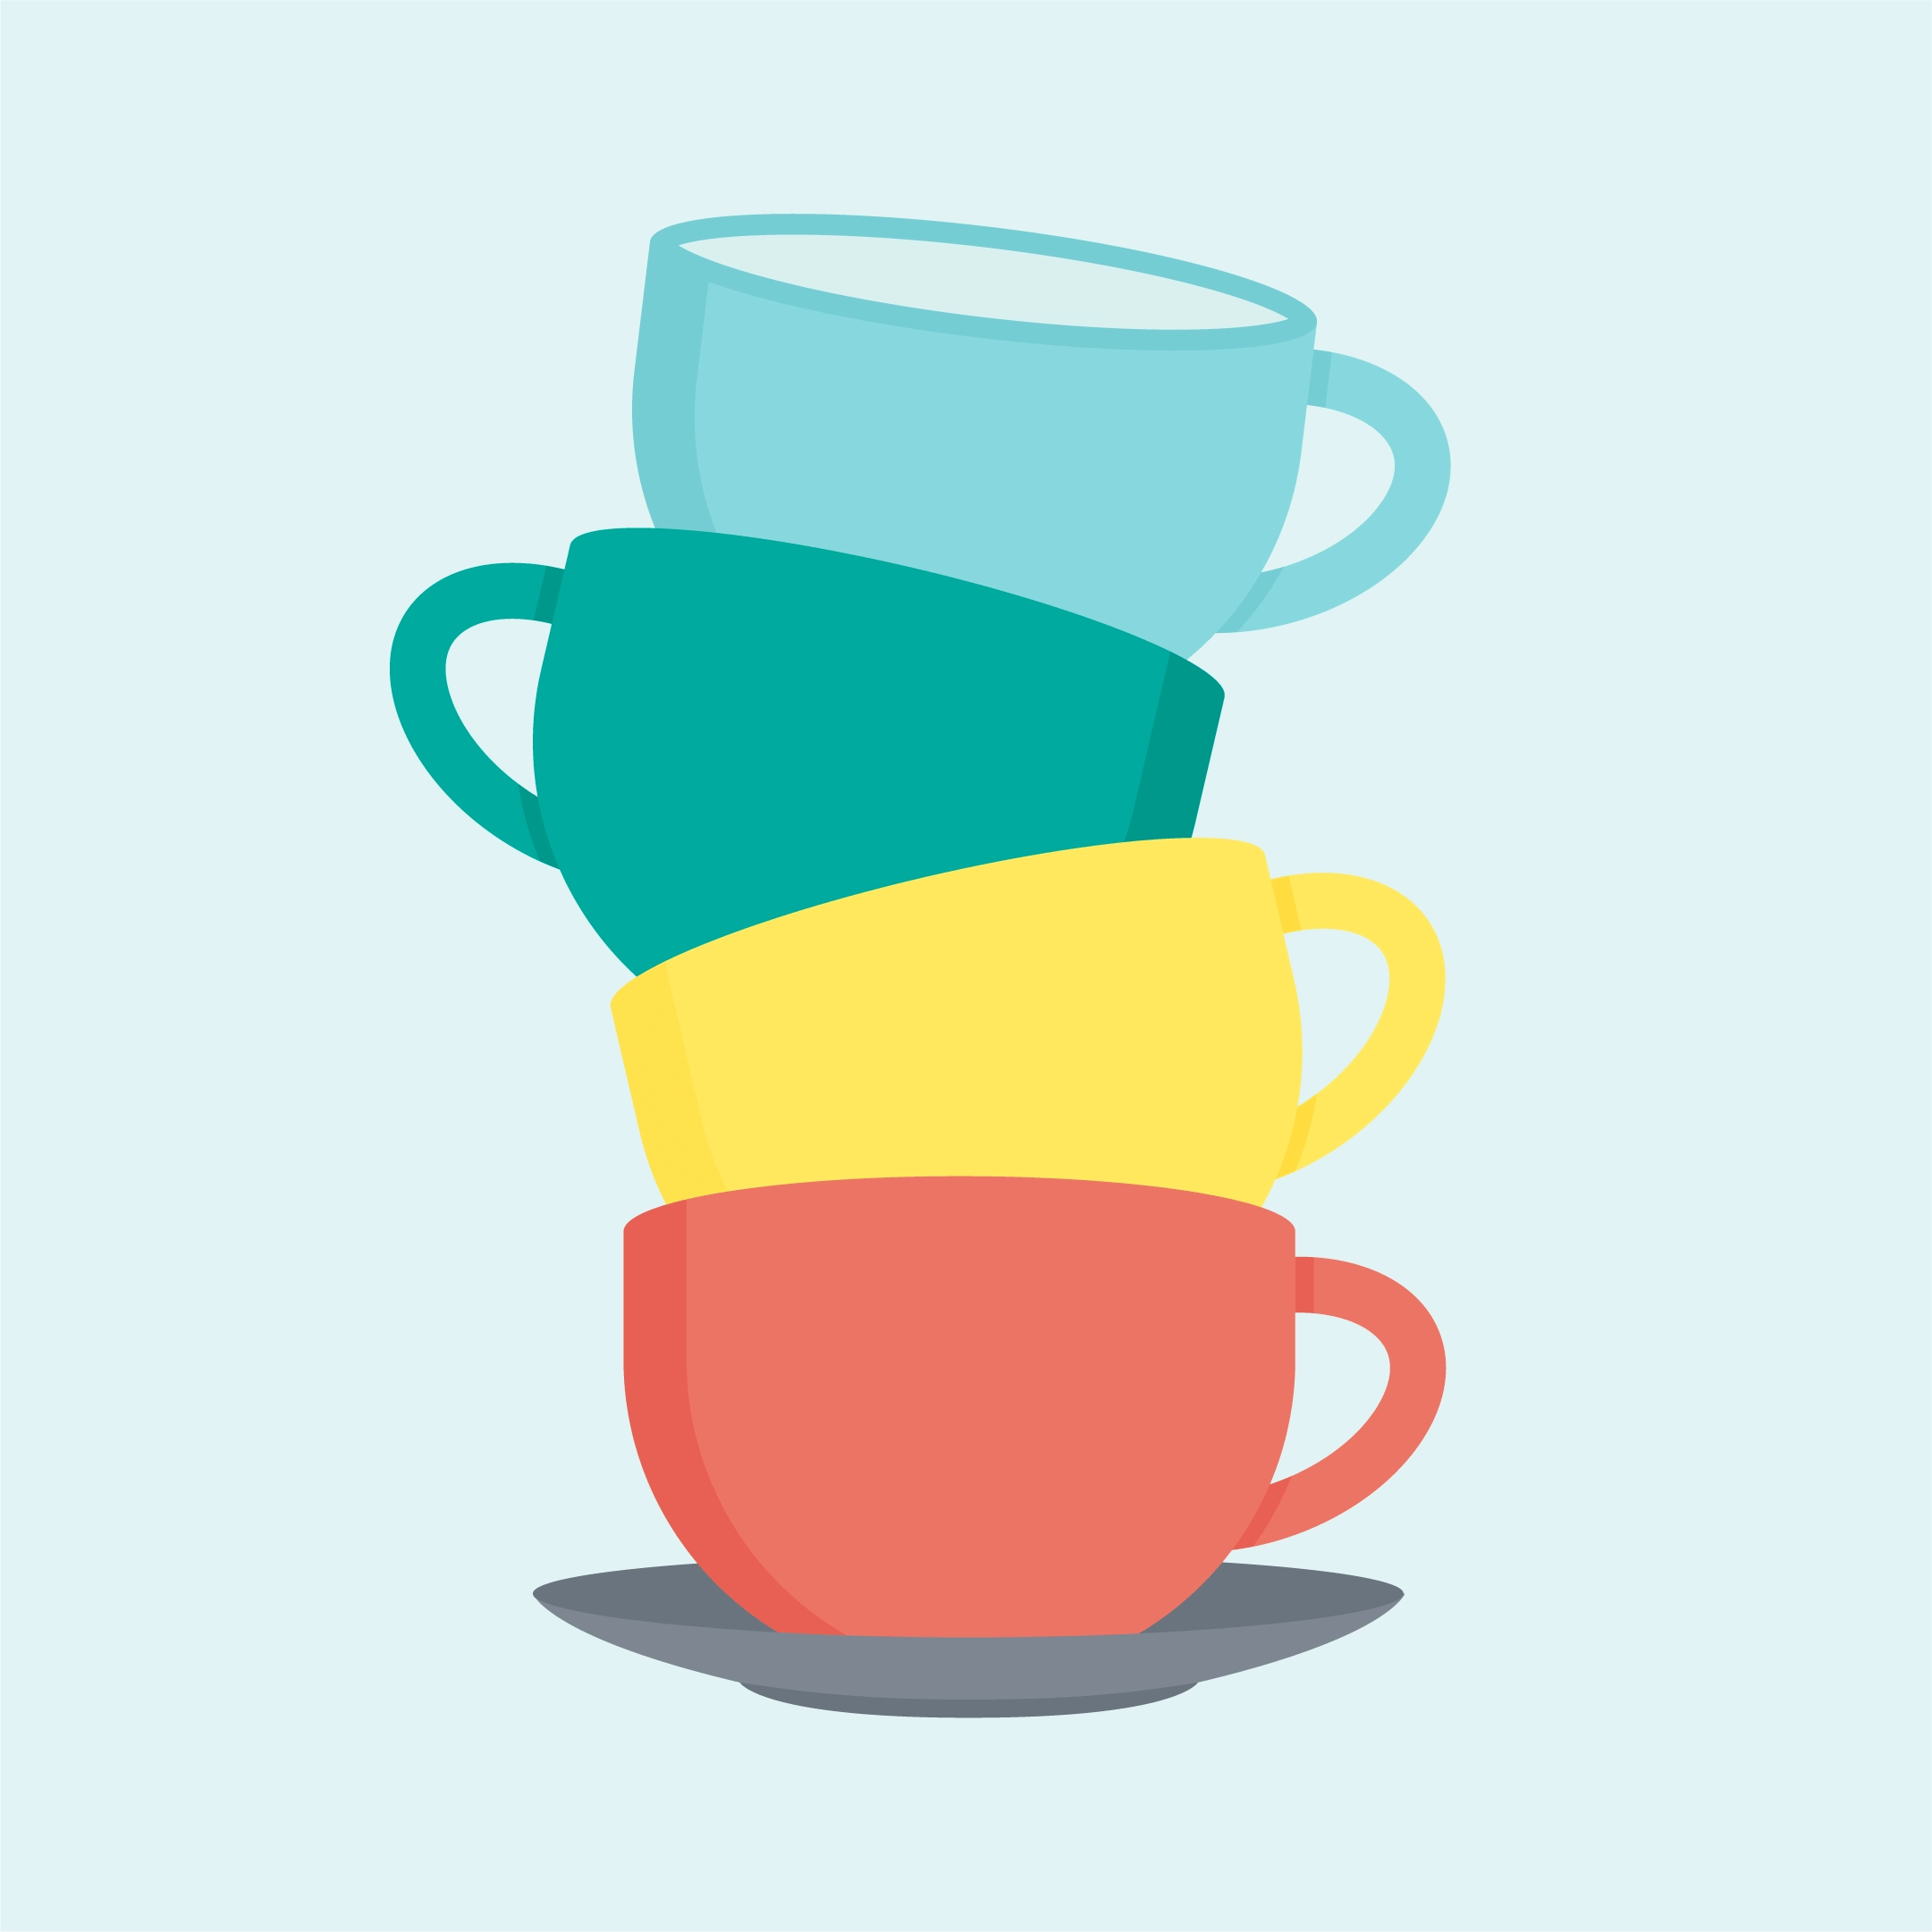 Vector illustration of a stack of solid colour teacups & saucer in flat design style